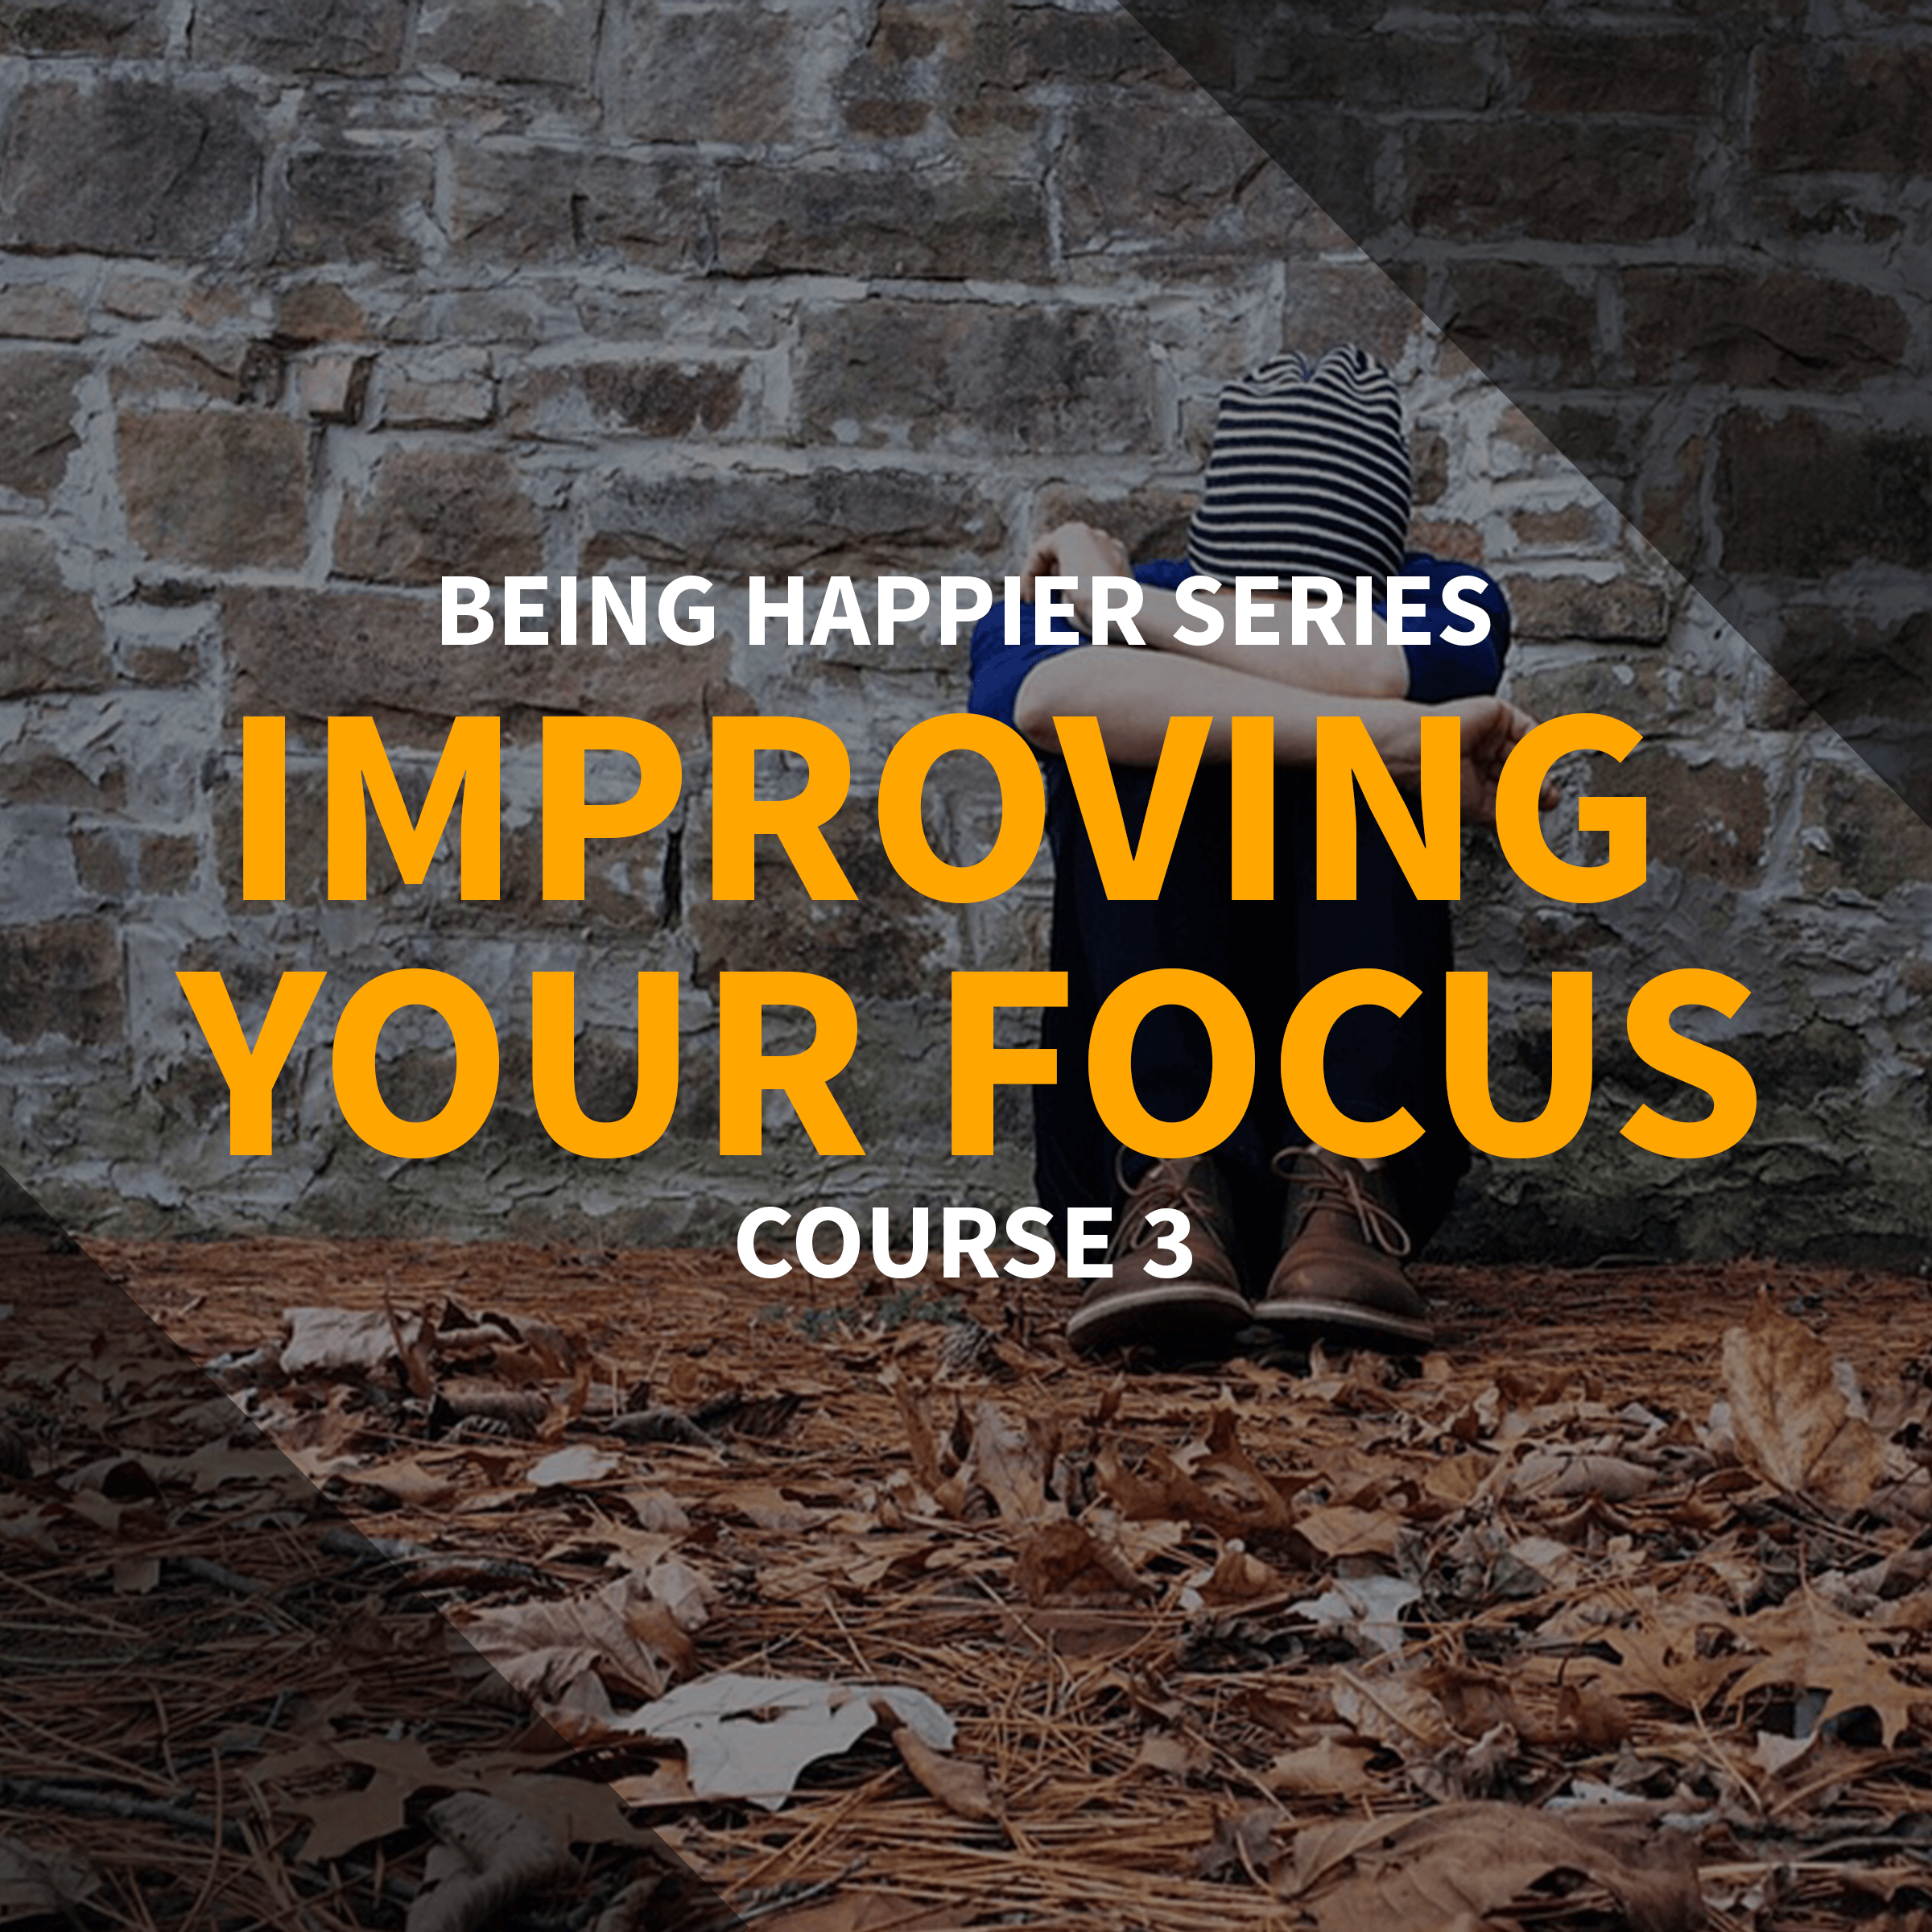 FHLC-Course-BeingHappier-3